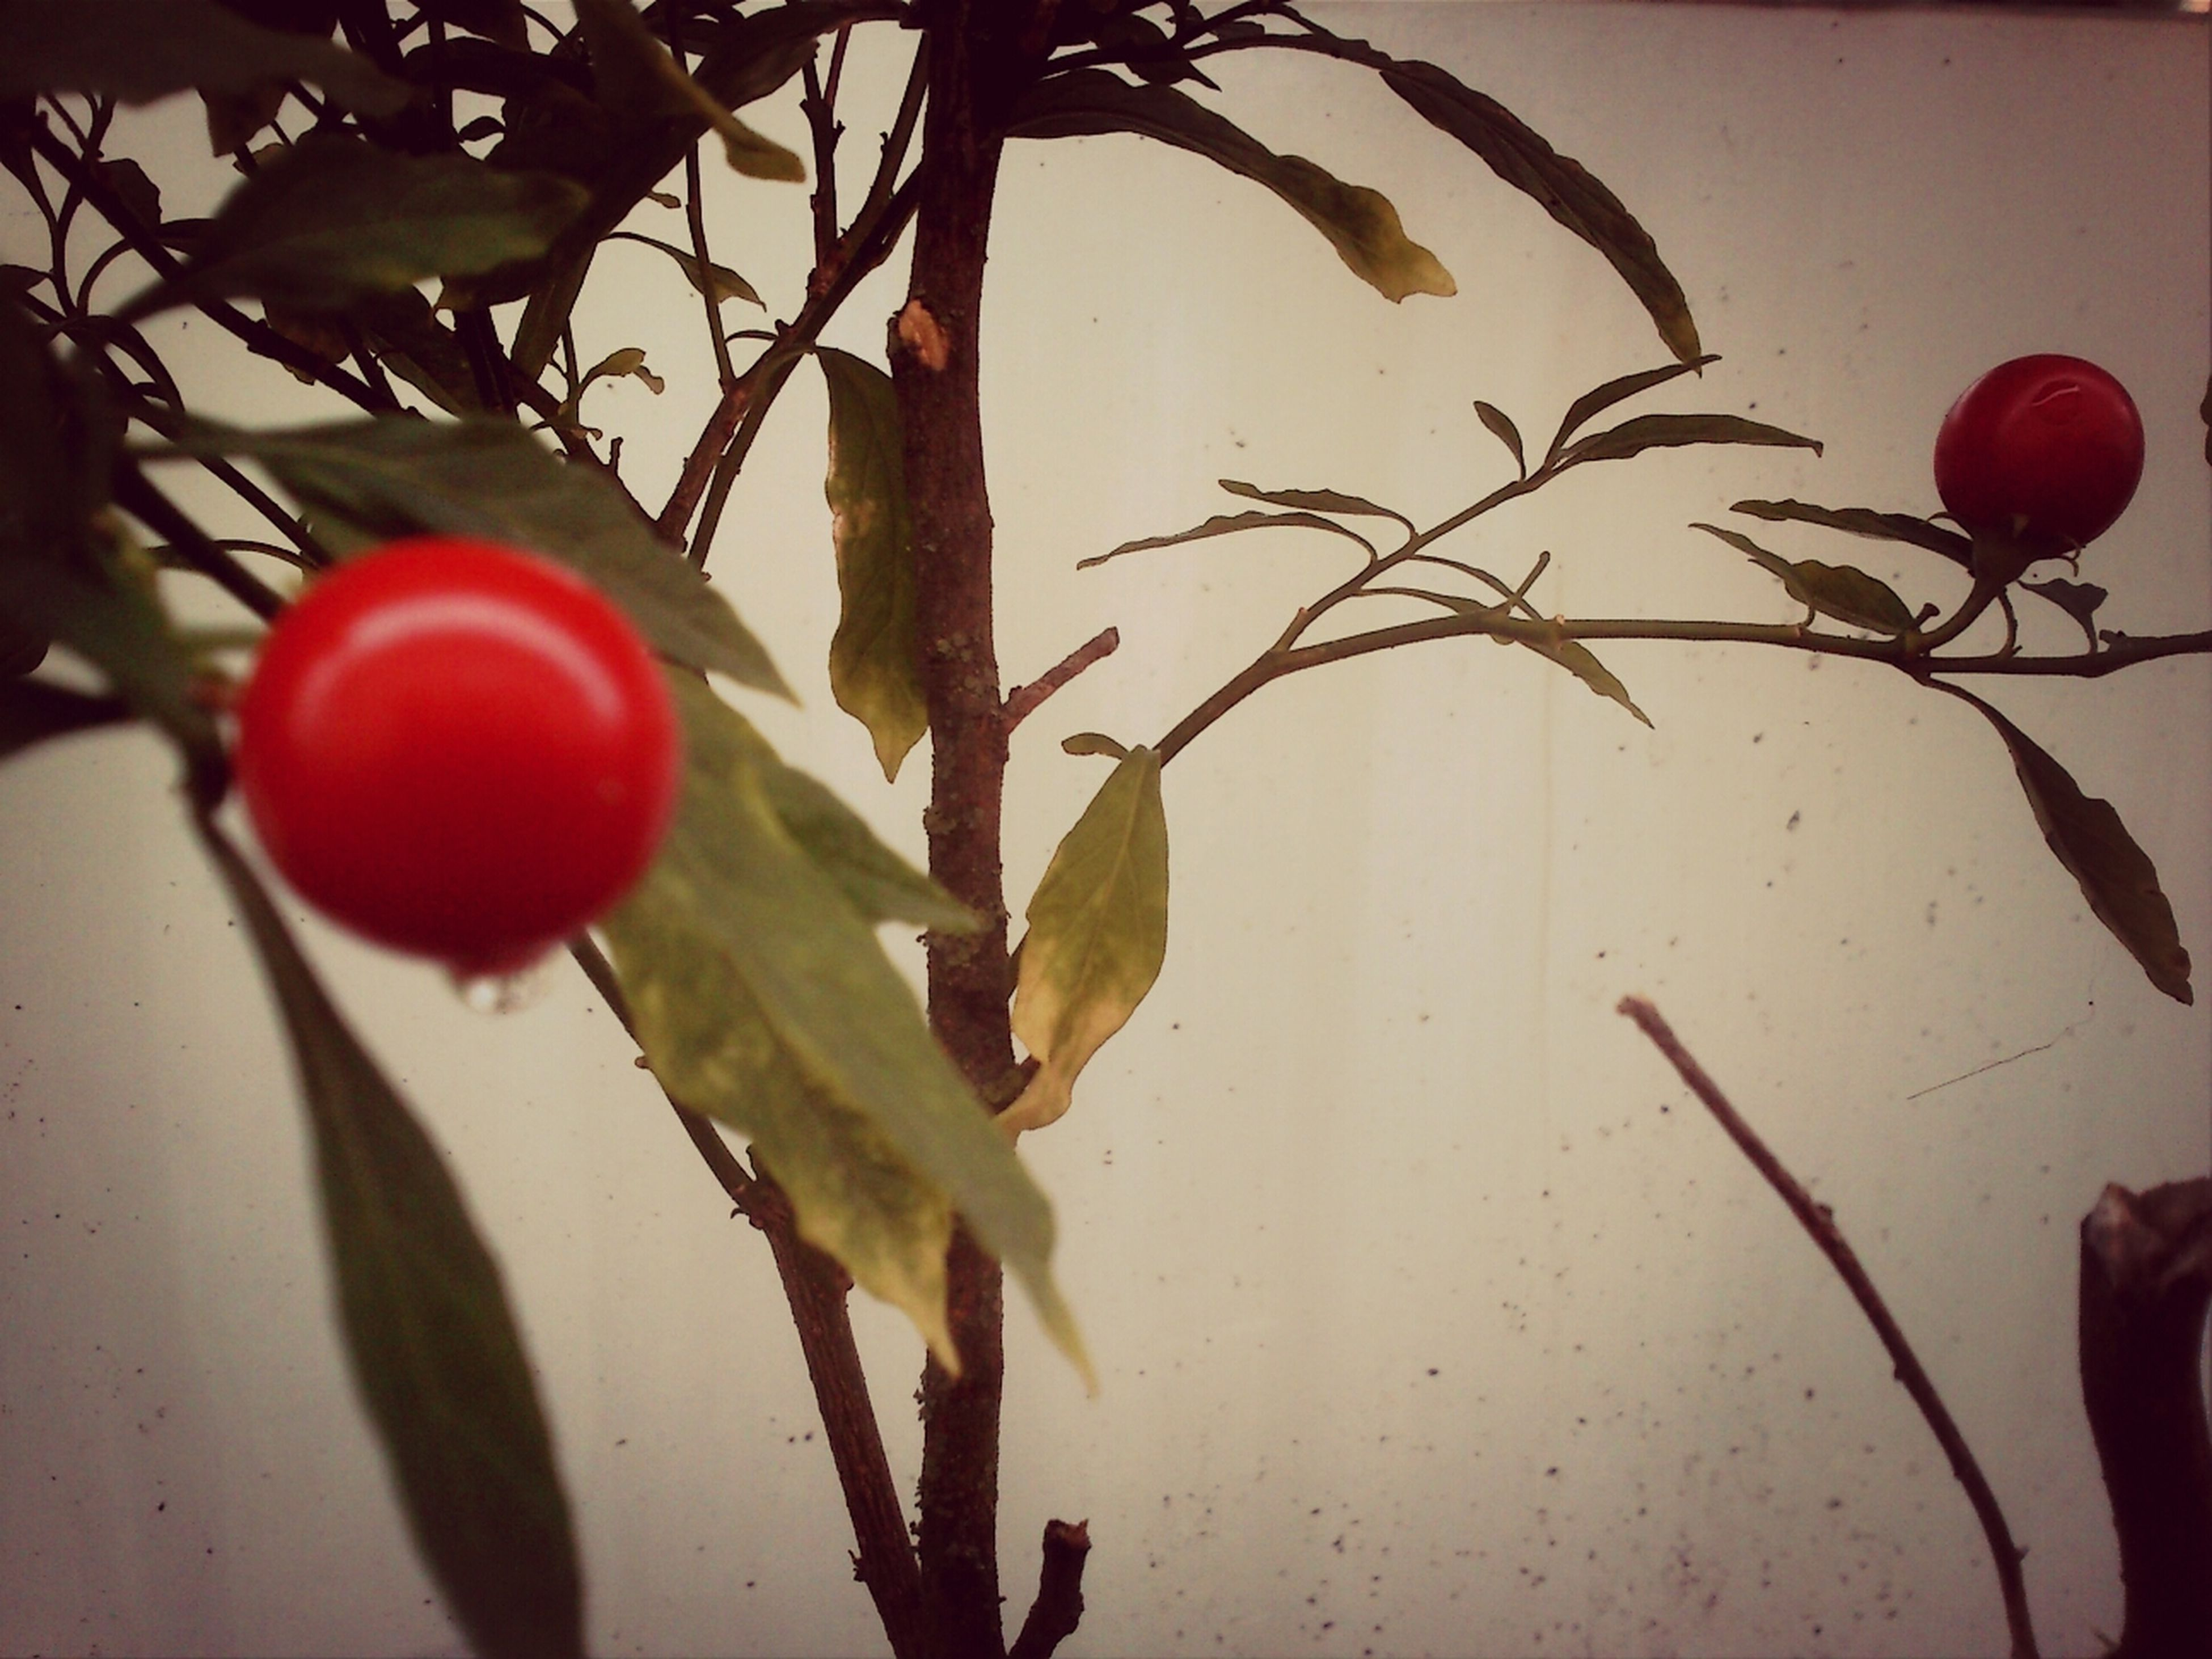 leaf, red, fruit, branch, growth, close-up, tree, hanging, plant, focus on foreground, freshness, food and drink, stem, nature, day, twig, no people, growing, outdoors, food